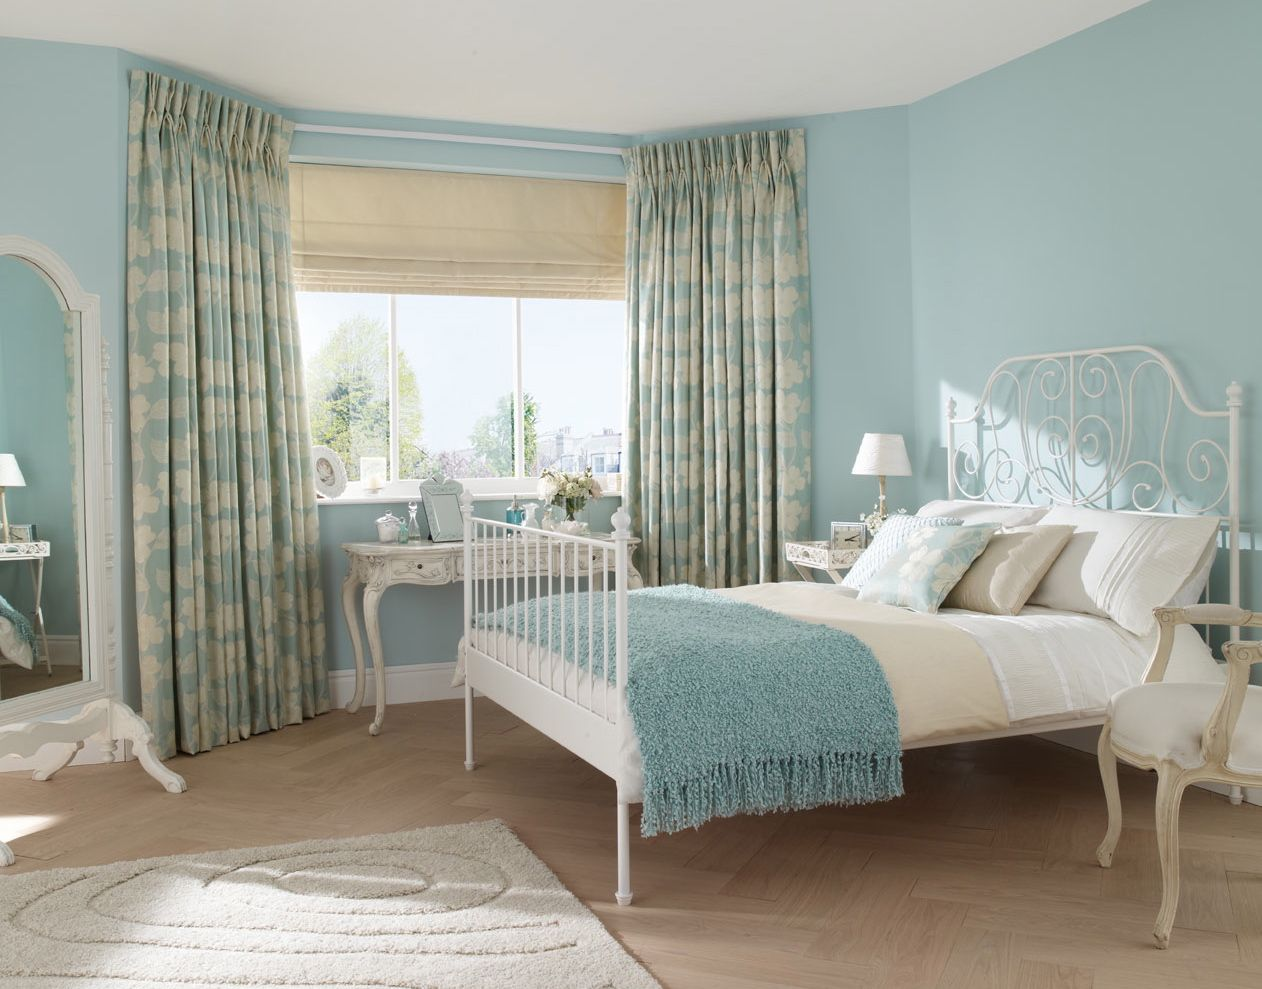 Master bedroom curtains - Bedroom Classic Calm Blue Bedroom Decoration With Checkered Vertical Curtain And White Low Profile Bed